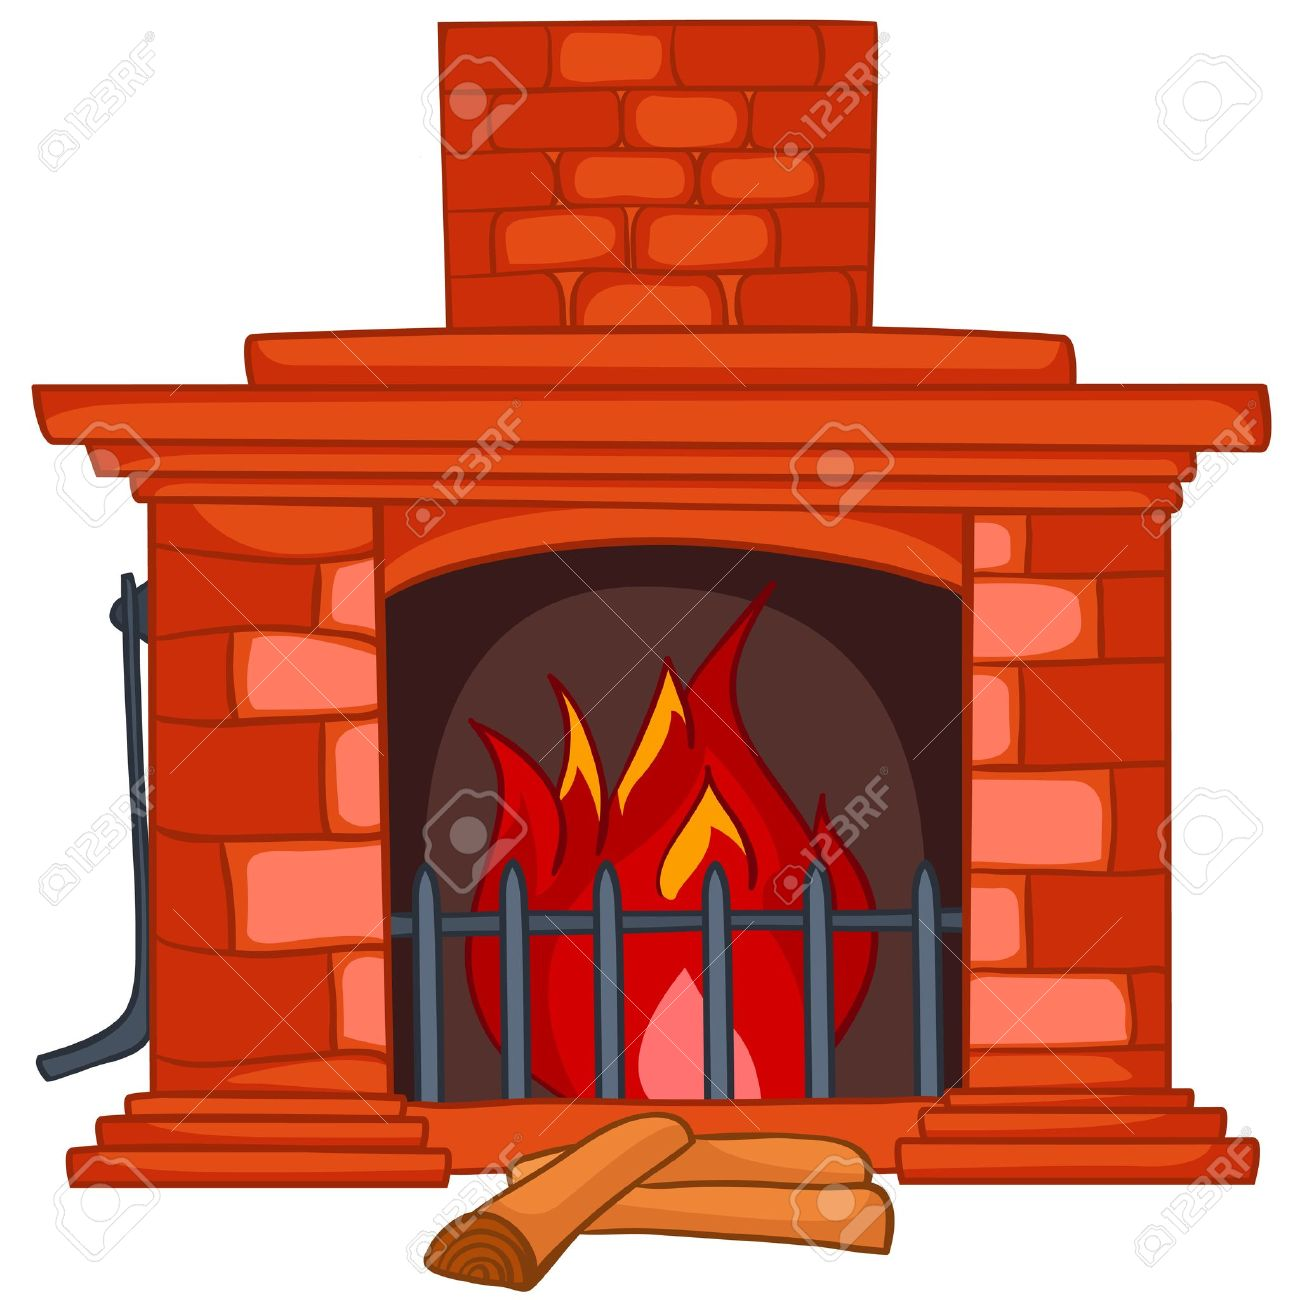 cartoon home fireplace royalty free cliparts vectors and stock